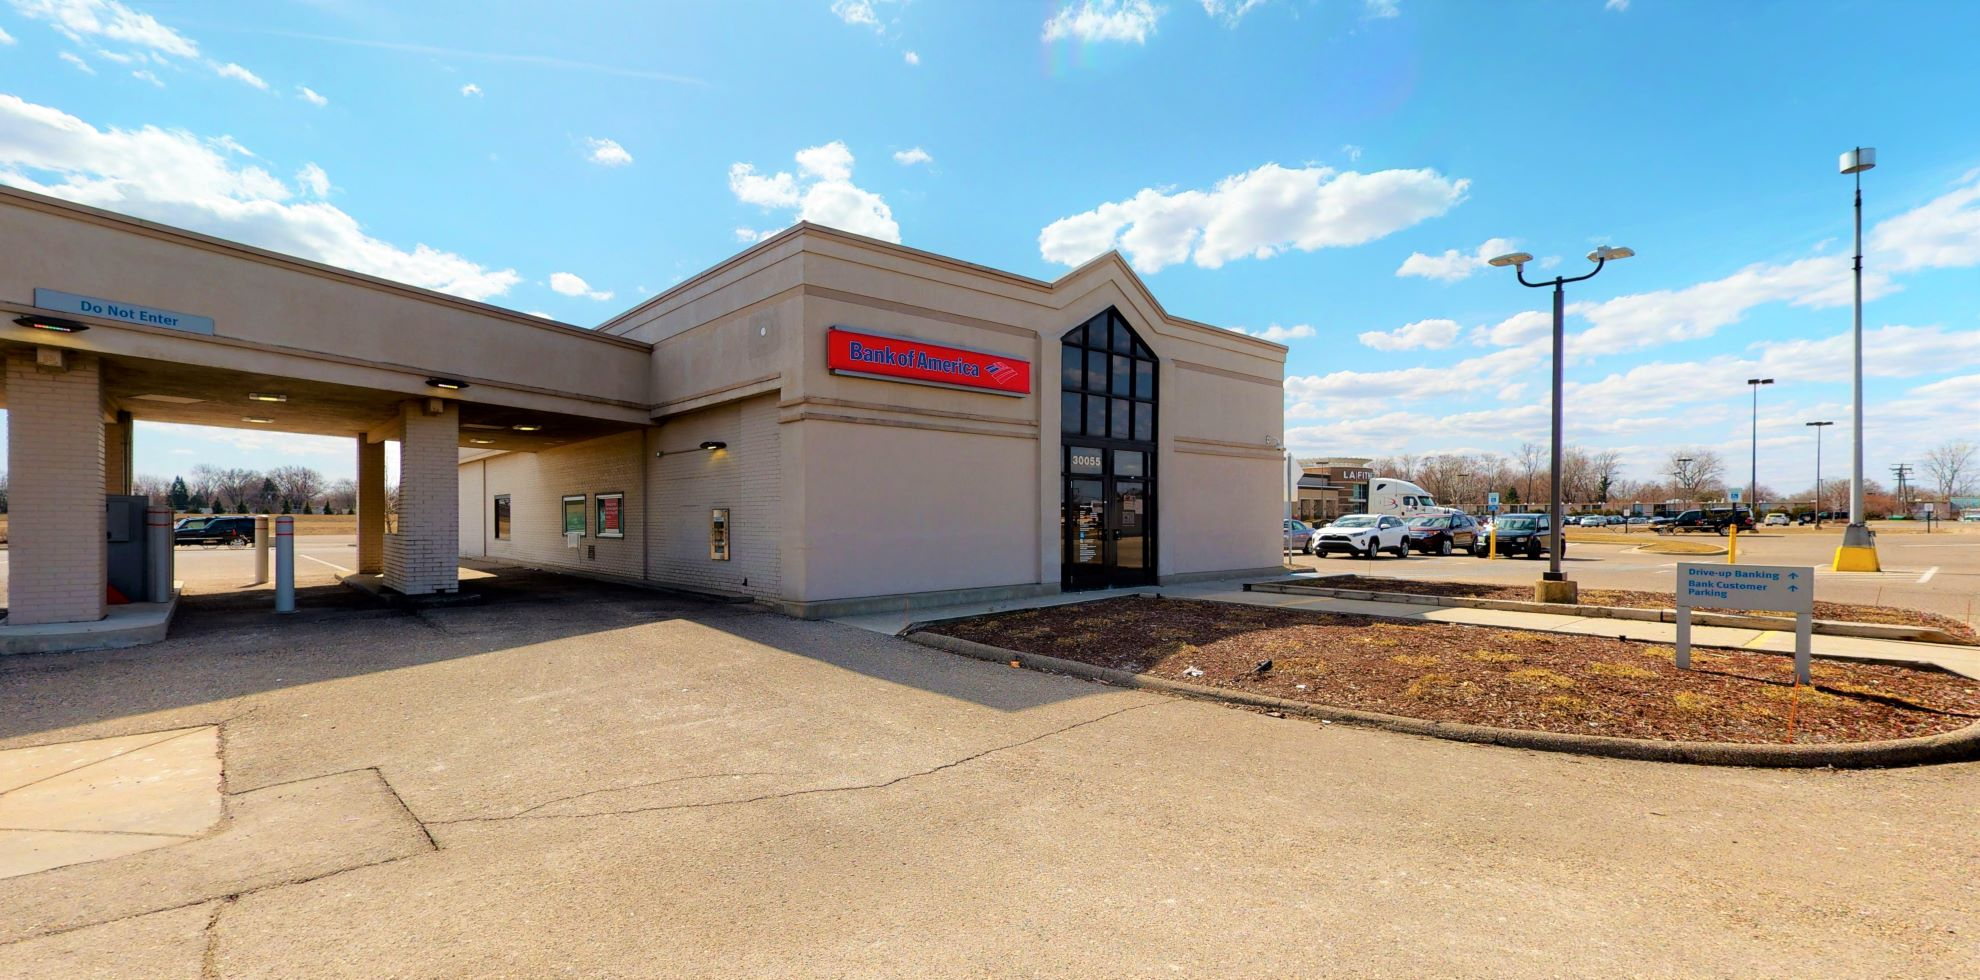 Bank of America financial center with drive-thru ATM | 30055 Plymouth Rd, Livonia, MI 48150